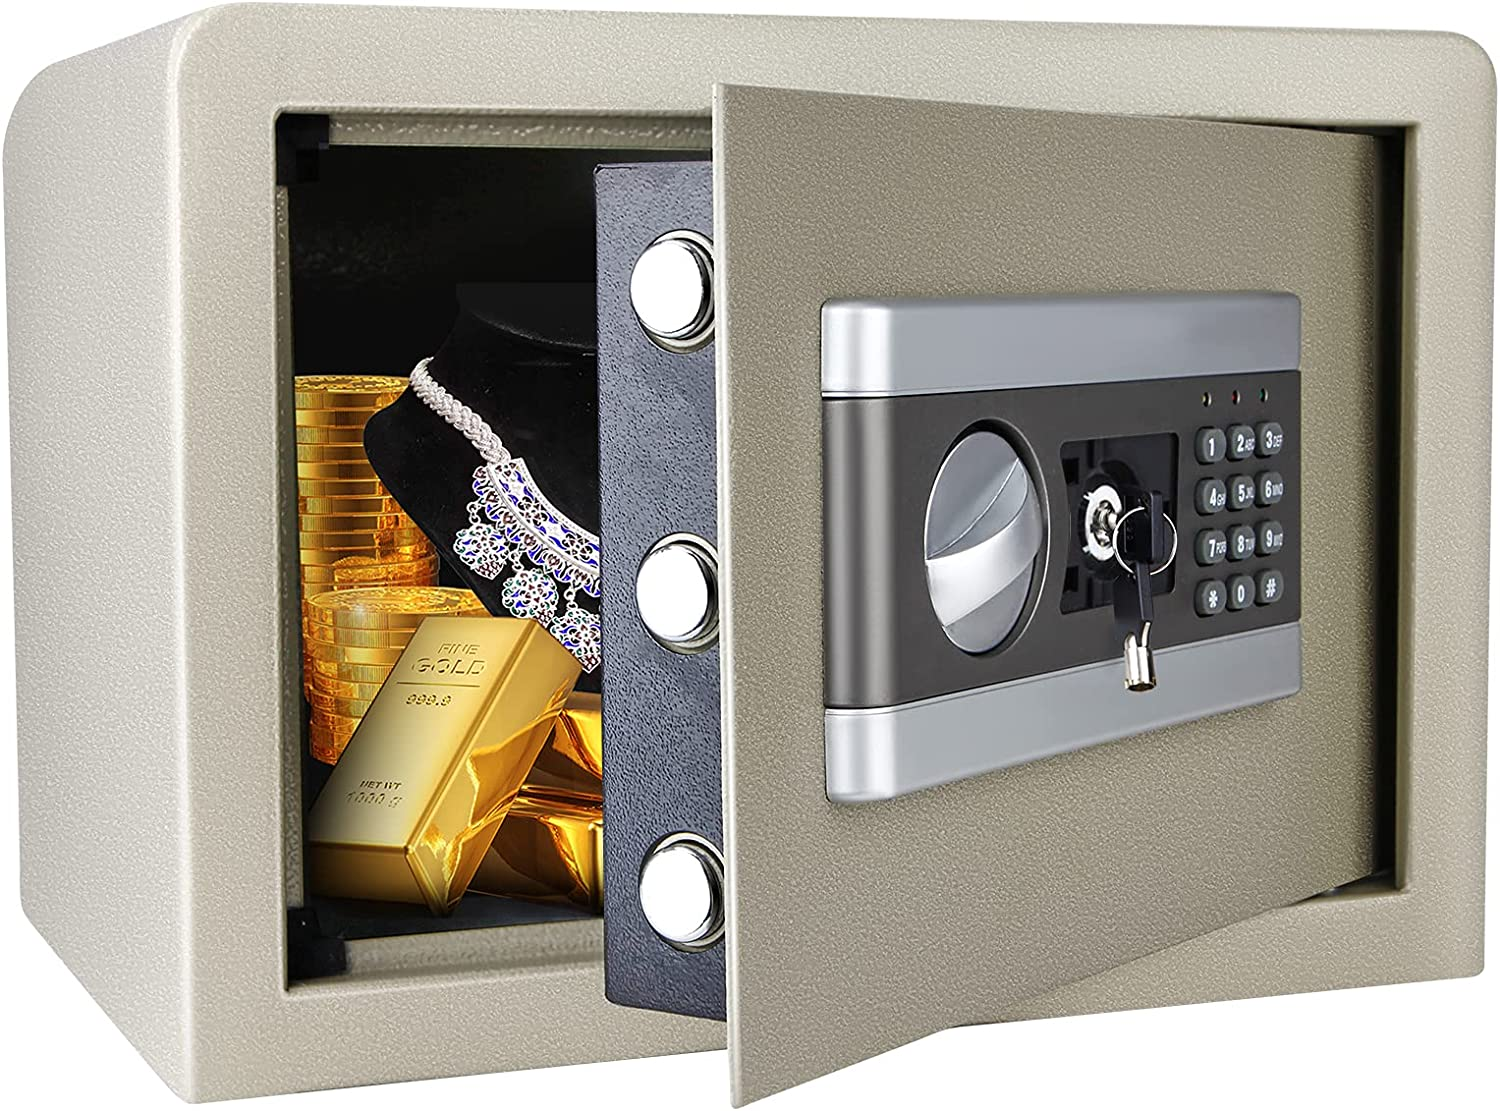 0.8 Cub Fireproof Safe Box for Home Office, All-Steel Lock Box with Digital Keypad and Key Lock for Cash Gun Jewelry Document